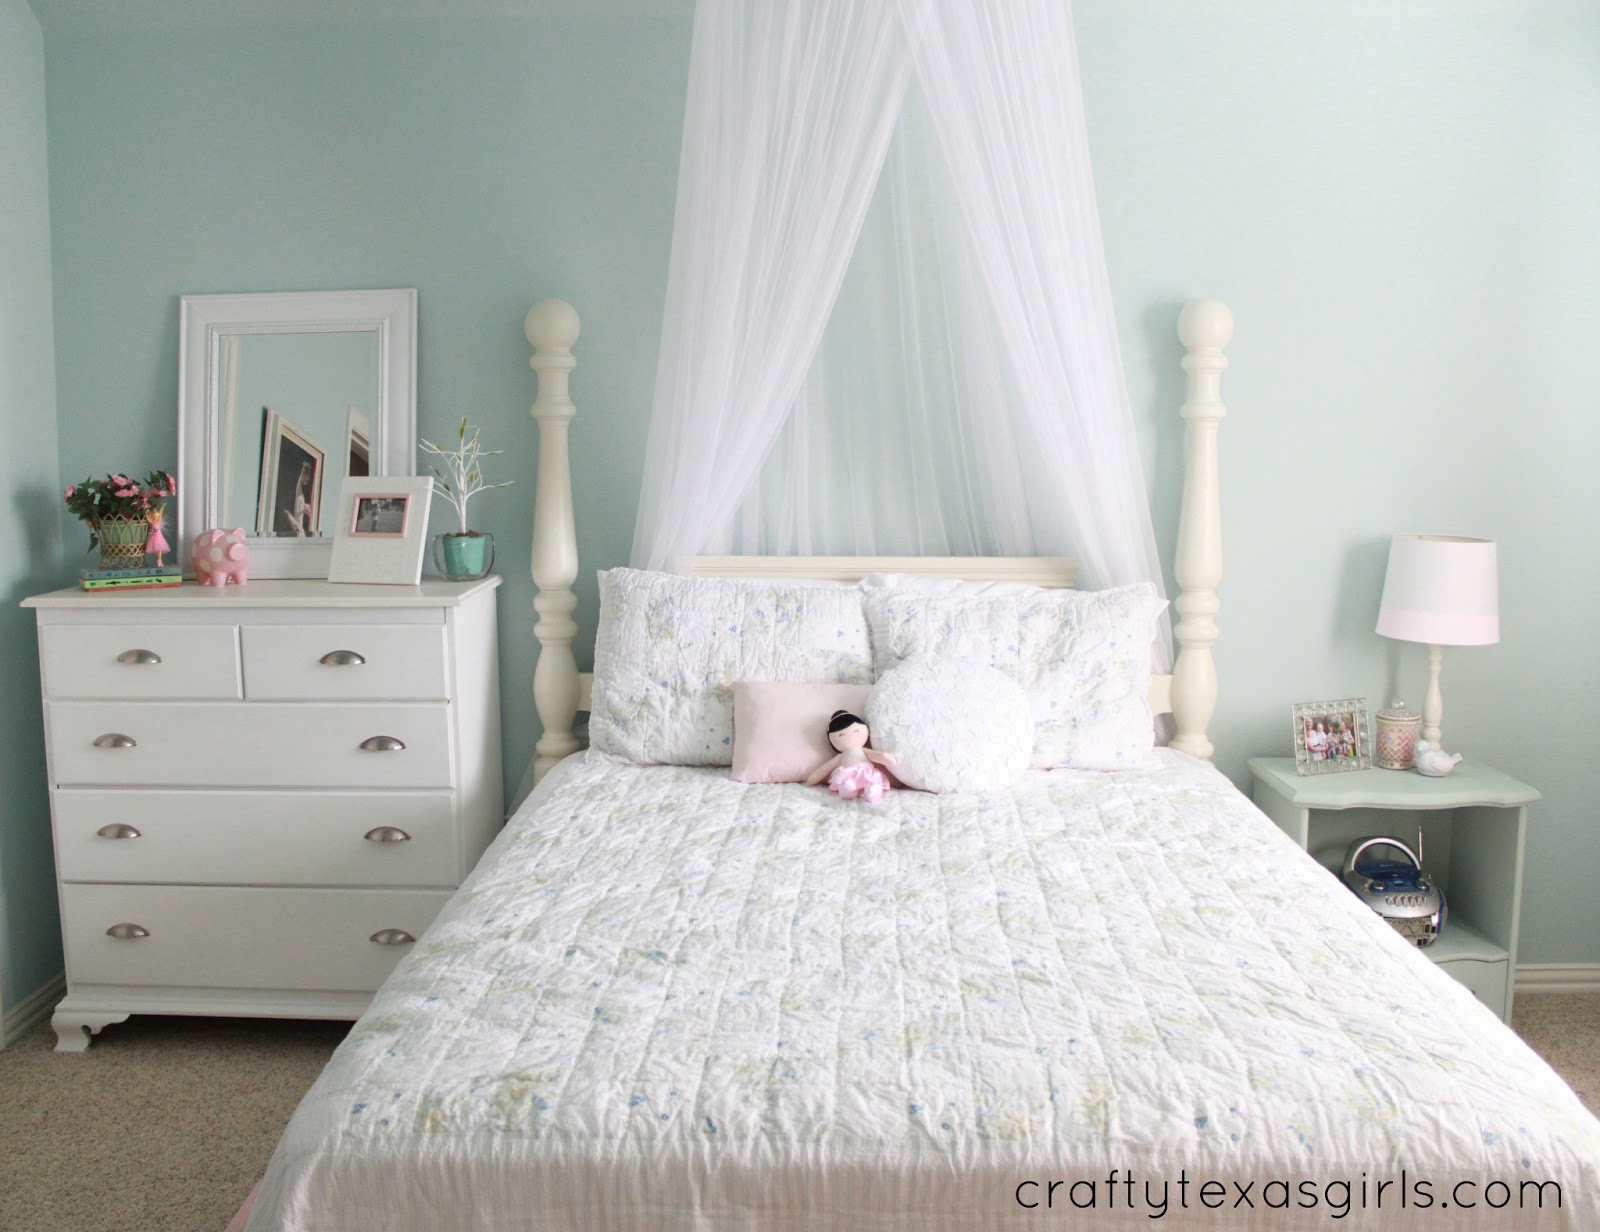 crafty texas girls a big girl room from crib to bed. Black Bedroom Furniture Sets. Home Design Ideas